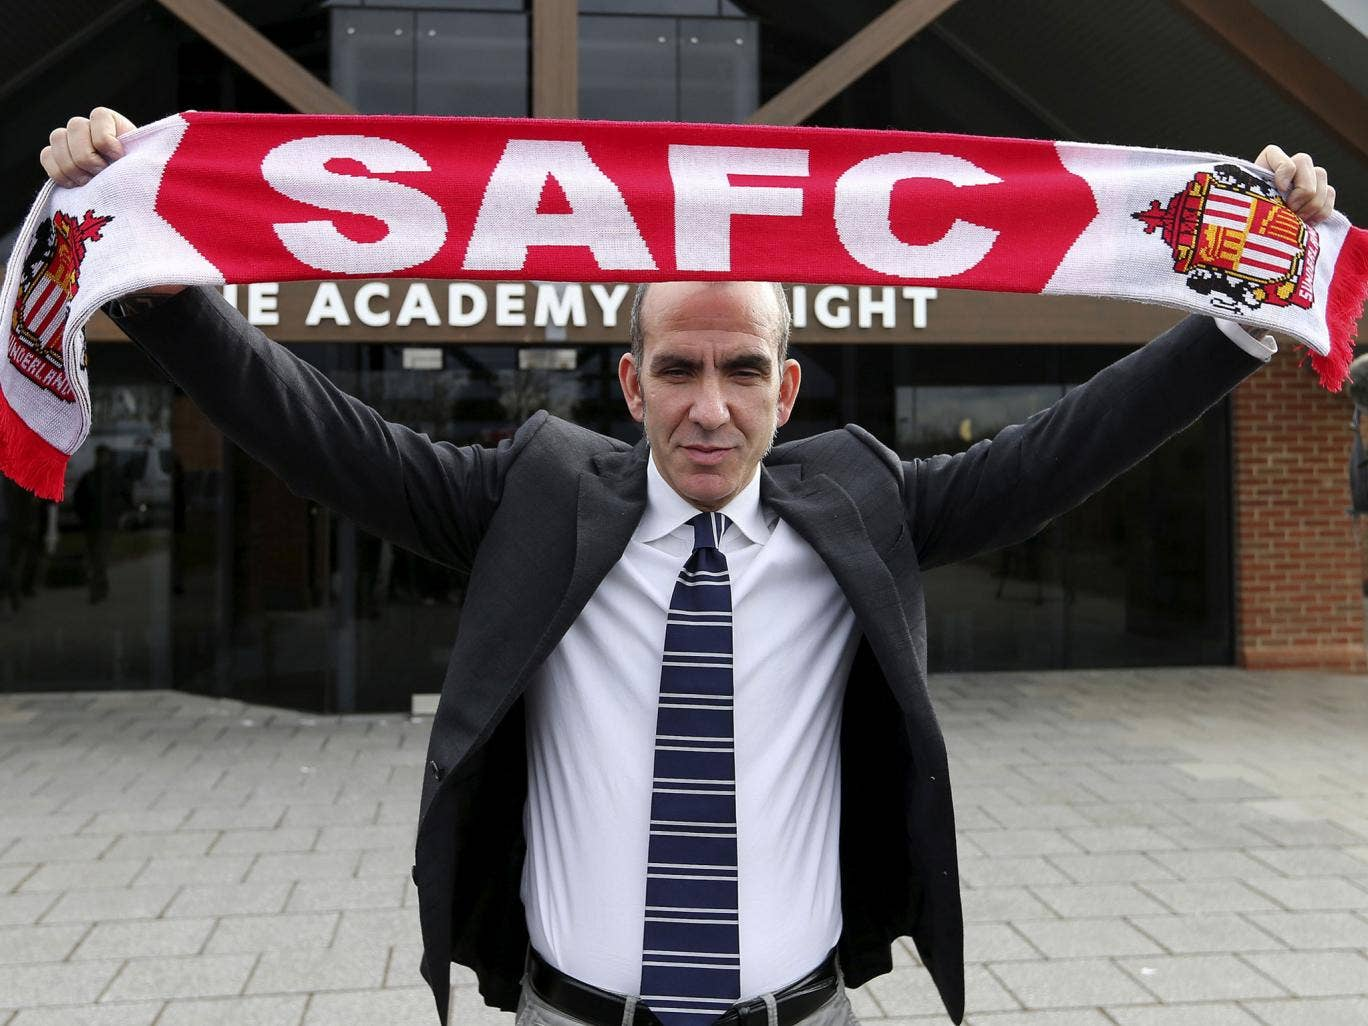 Paolo Di Canio's arrival as Sunderland coach has led many miners to want to remove their historic banner from the club in protest